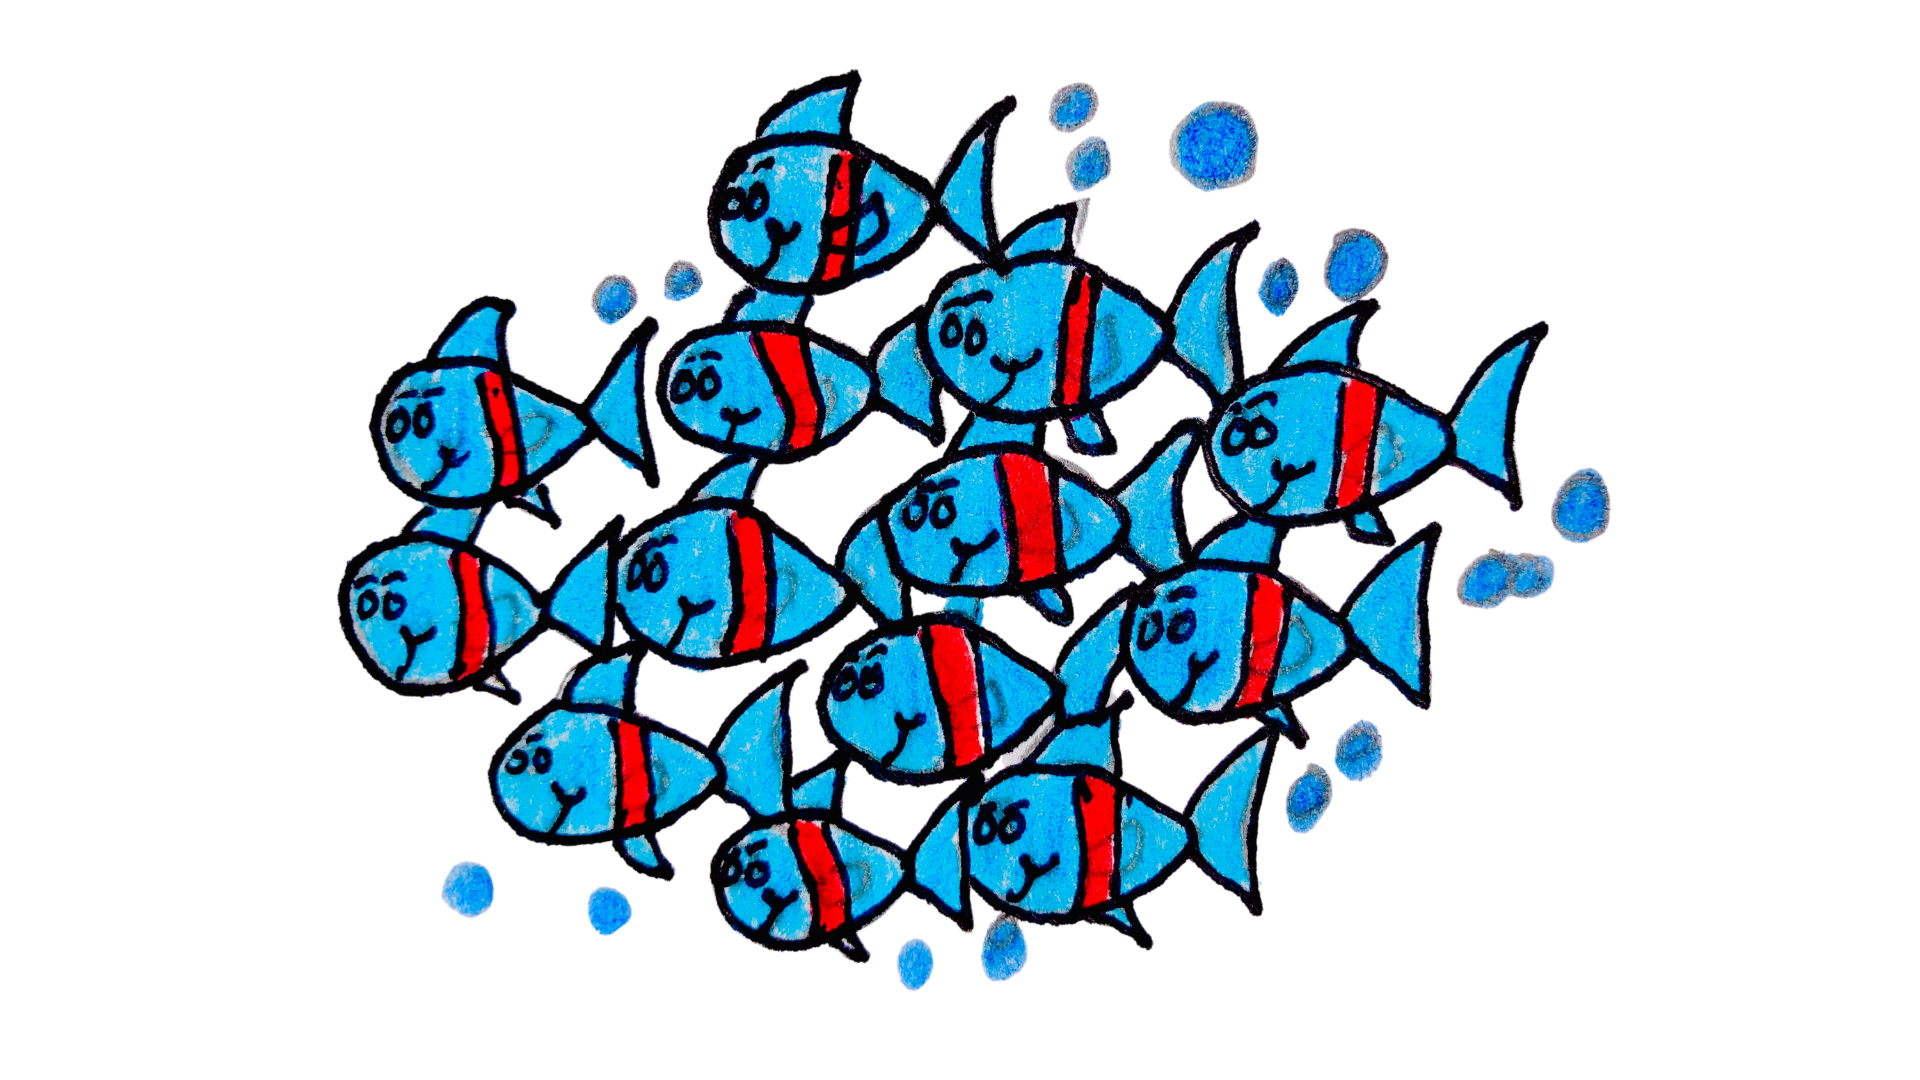 School of fish in the children's story, The Very Brave Little Fish.